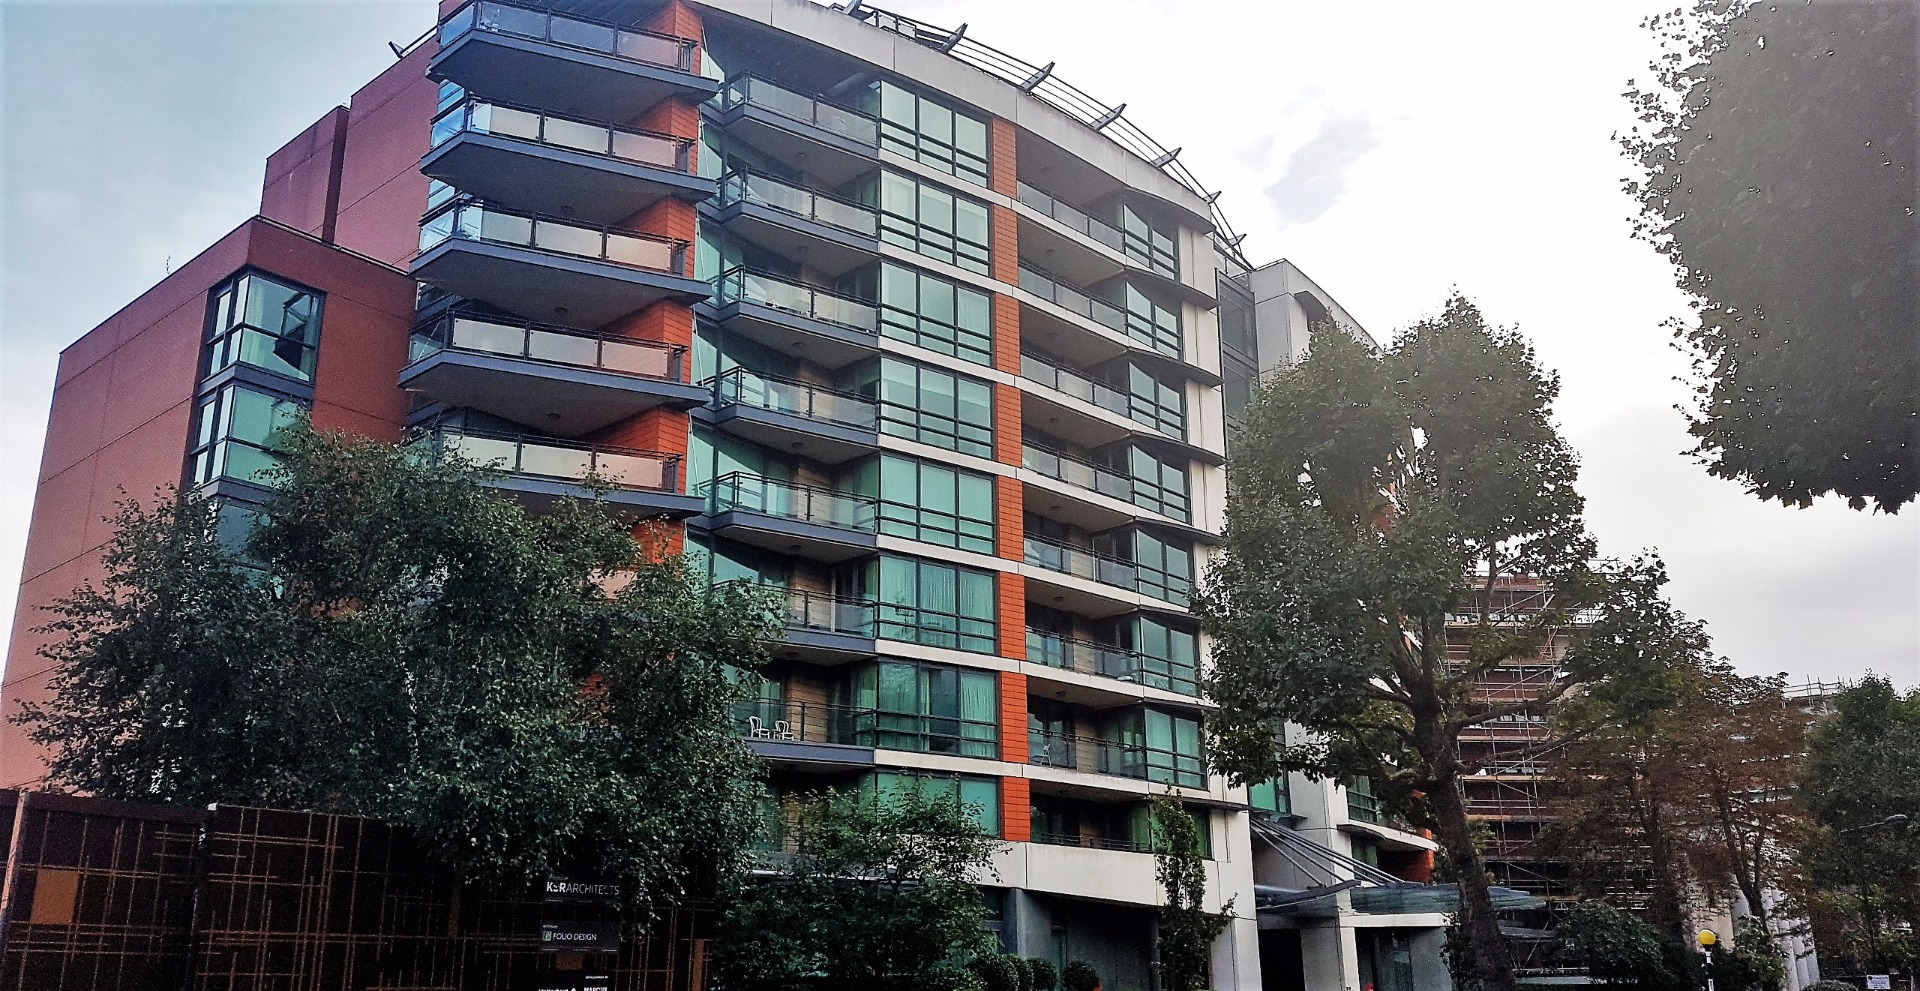 2 Bed Flat To Rent On Pavilion Apartments St Johns Wood Rd London - The-pavilion-apartments-st-johns-wood-road